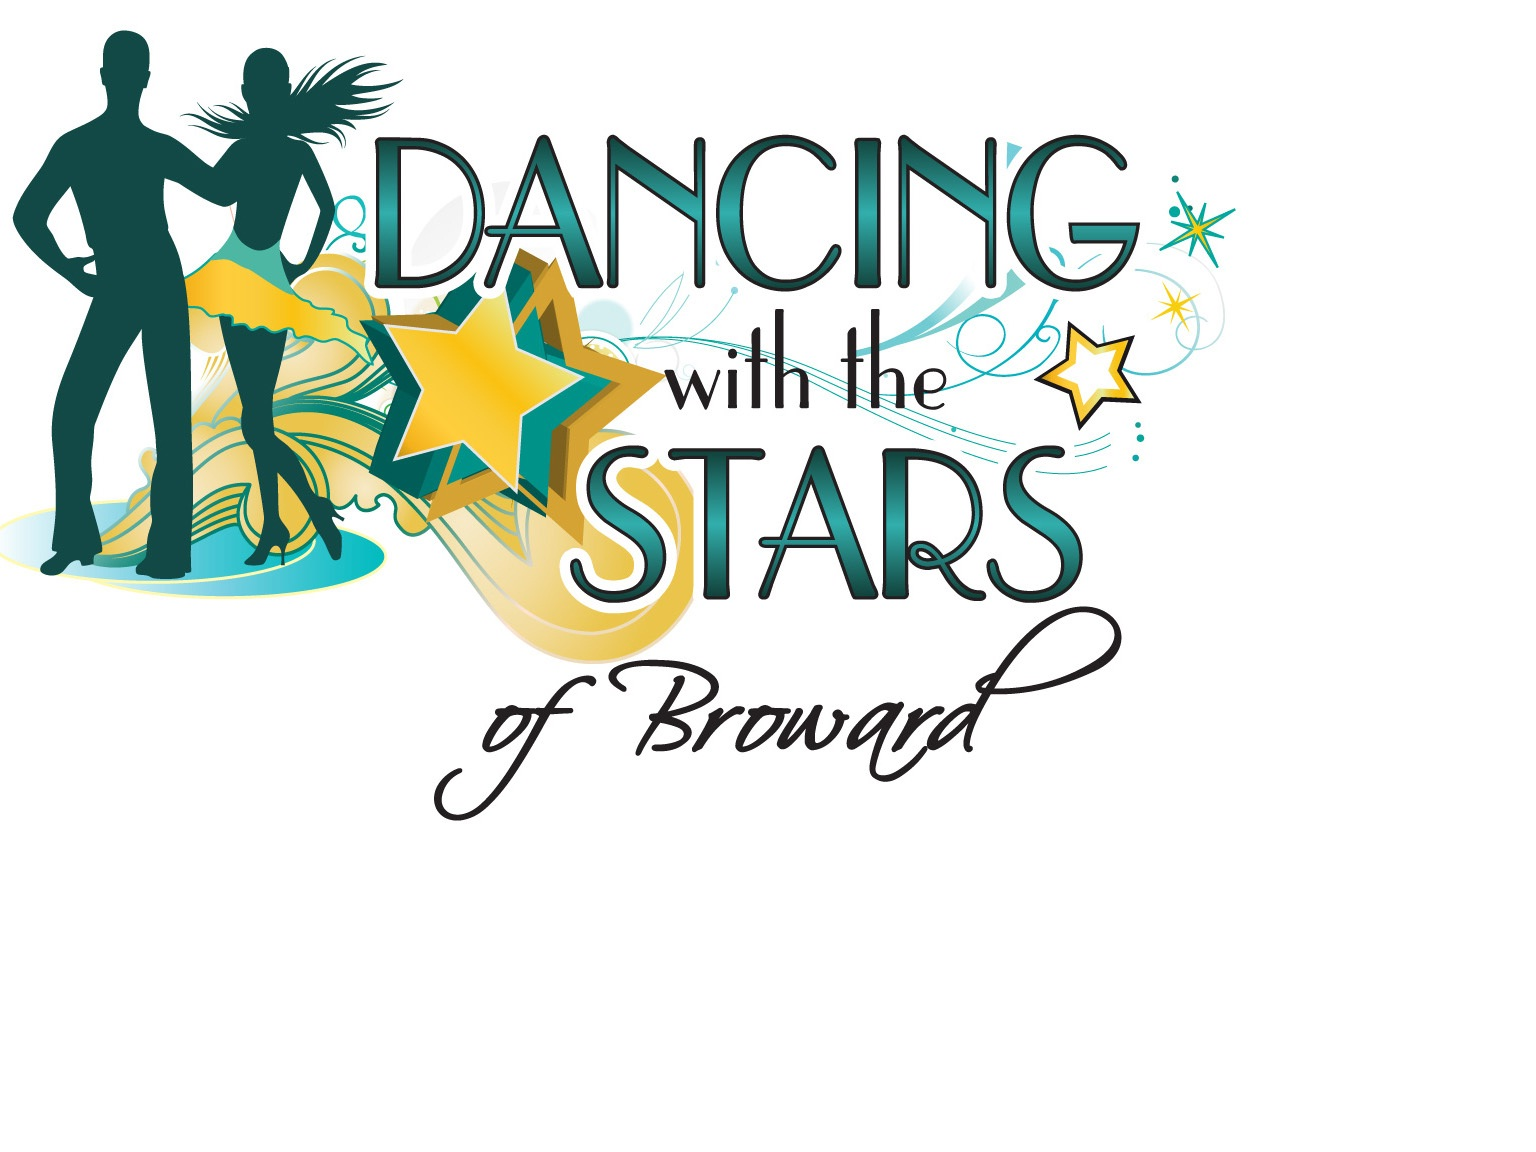 Dancing with the Stars of Broward.